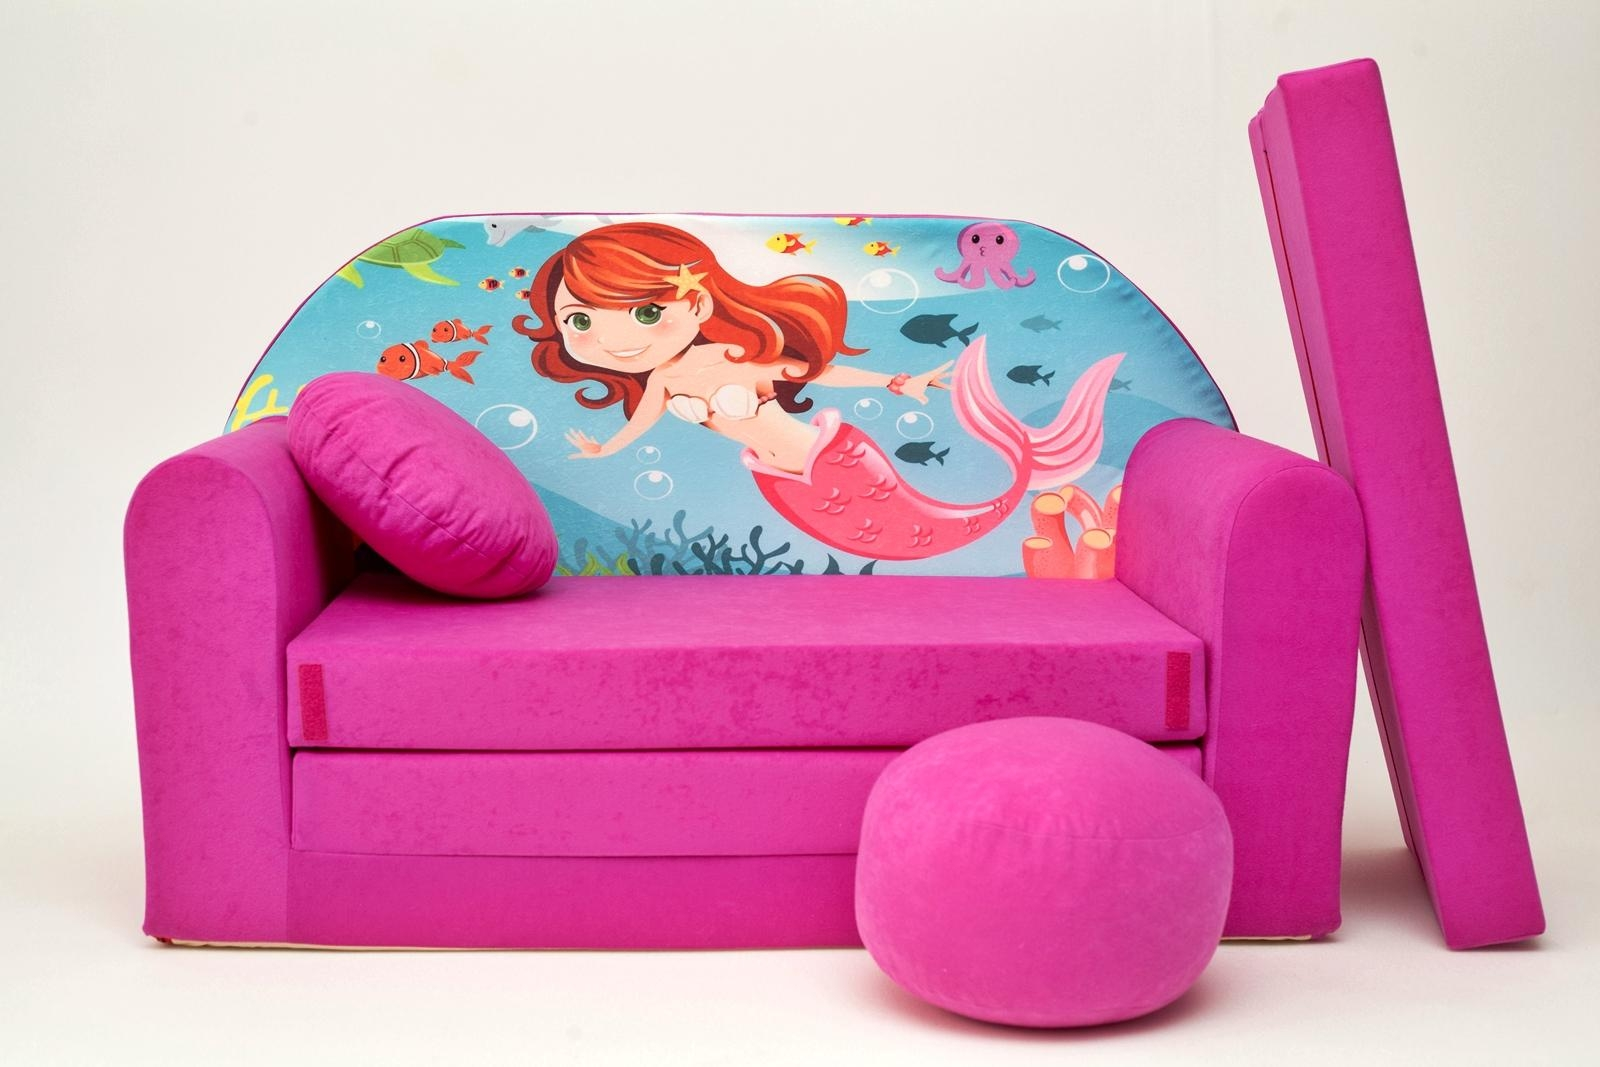 Sofa Beds For Kids 20 Inspirations Sofa Beds For Baby Sofa Ideas